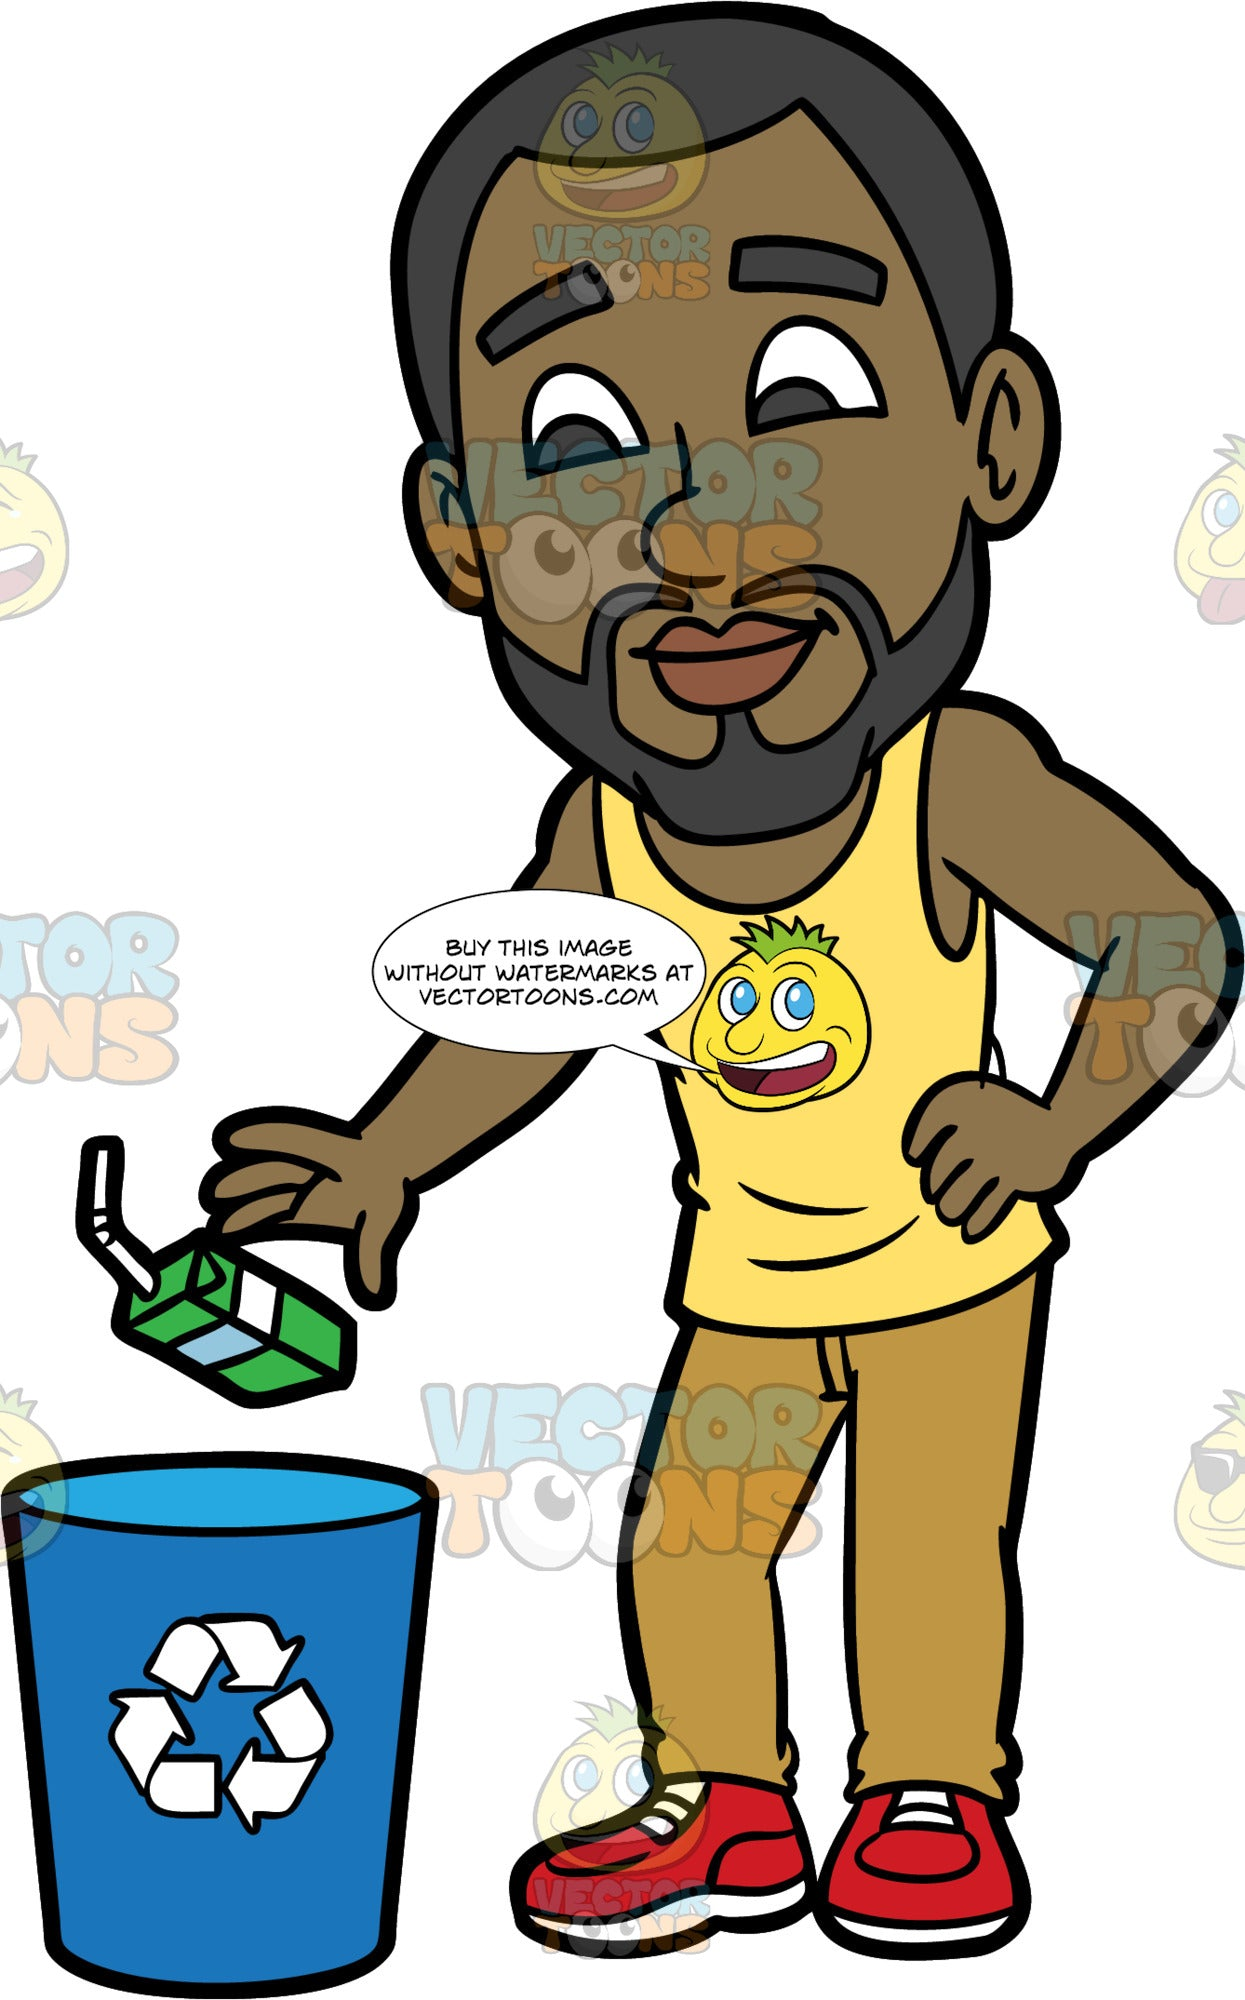 Calvin Throwing An Empty Juice Box Into A Recycling Bin. A black man with a beard, wearing light brown pants, a yellow tank top, and red shoes, throwing a drinking box with a plastic straw into a recycling bin